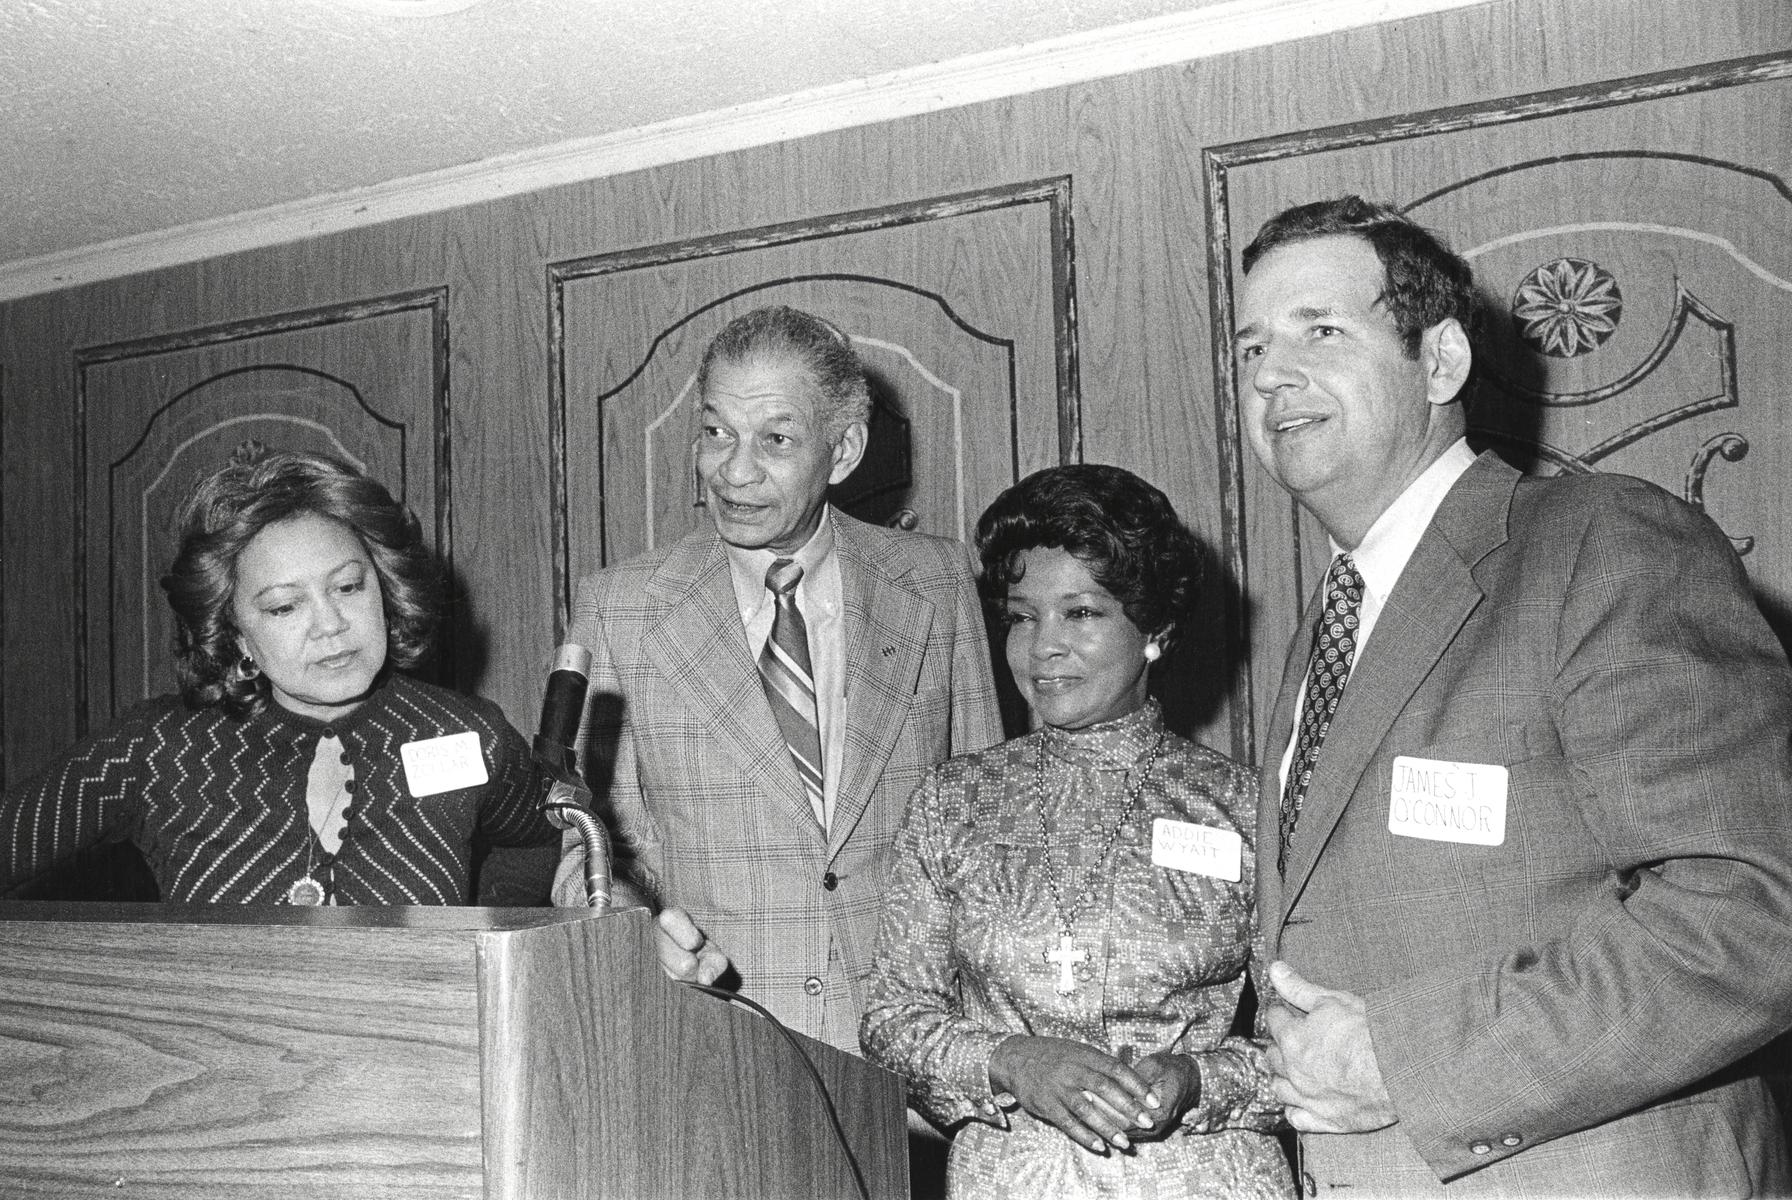 Addie Wyatt, Bill Berry, Doris M. Zollar, and James O'Connor